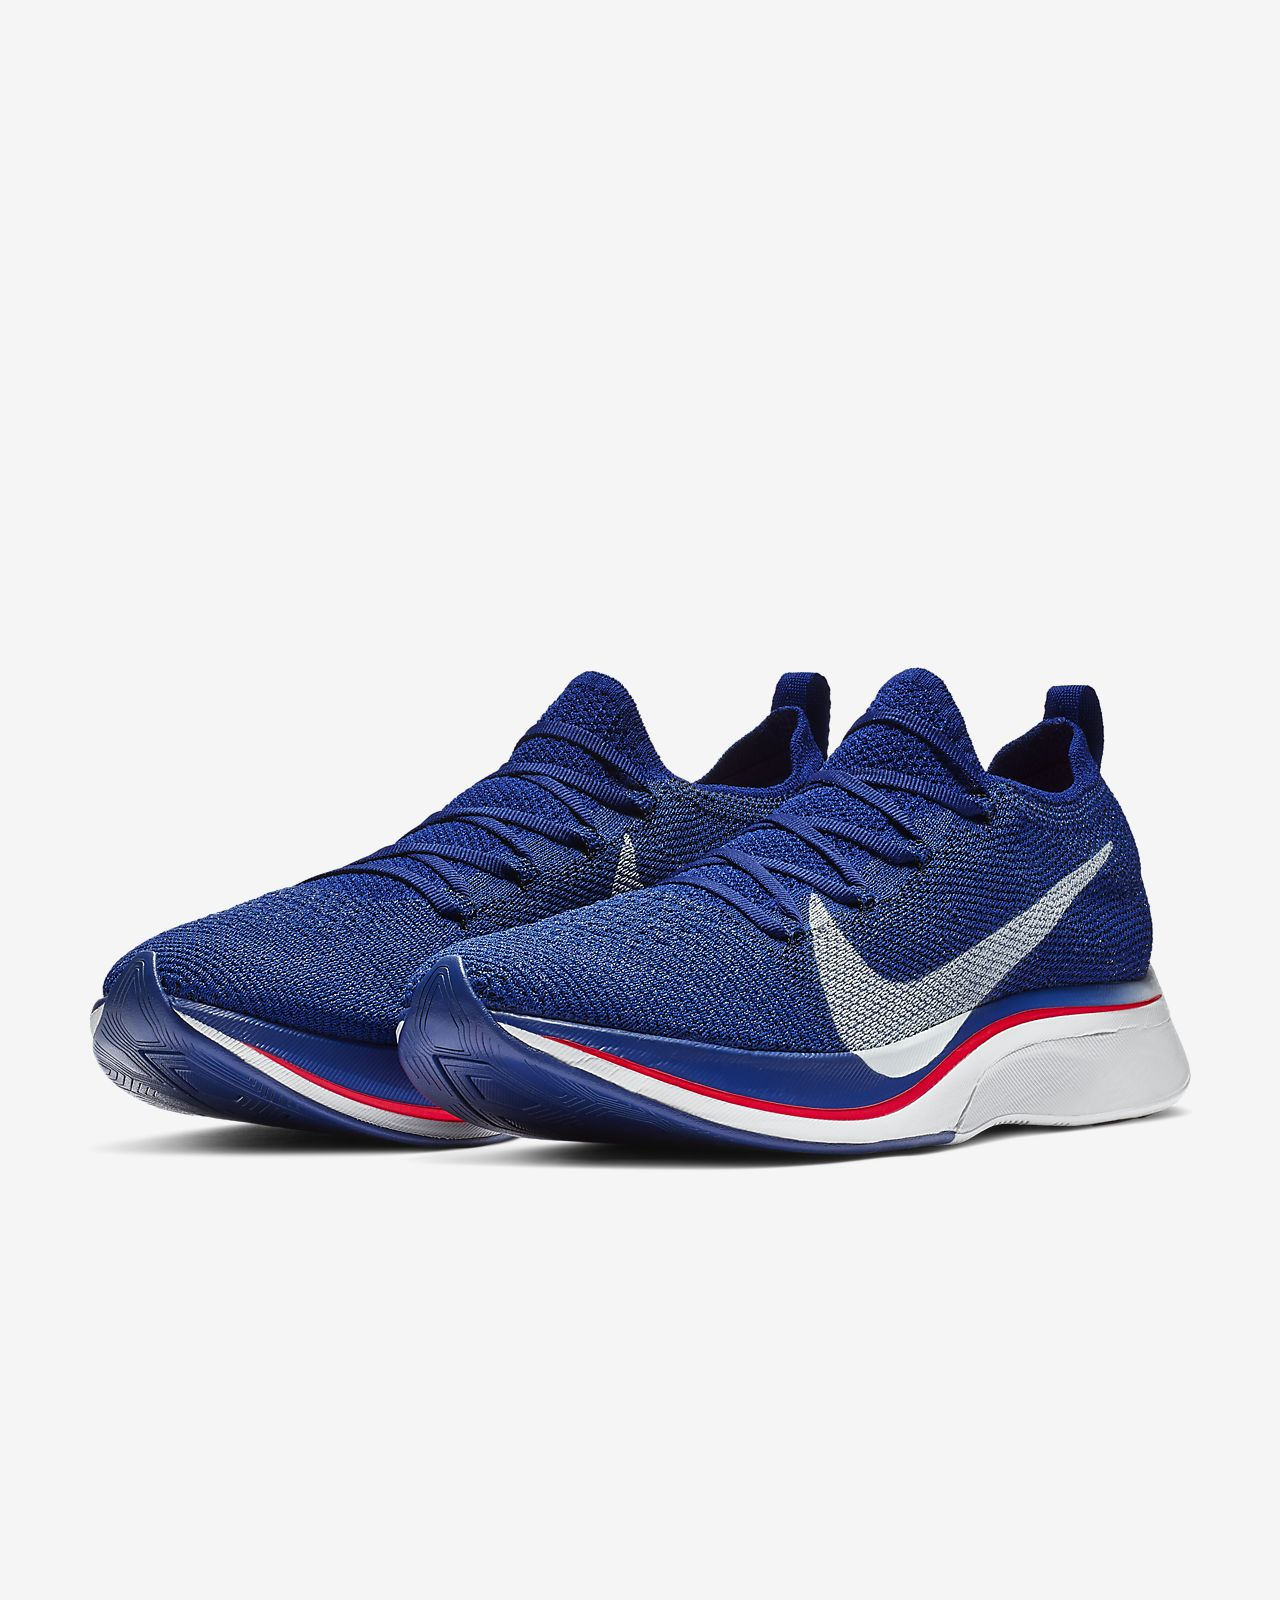 on sale b795c 8c37a ... Nike Vaporfly 4% Flyknit Running Shoe